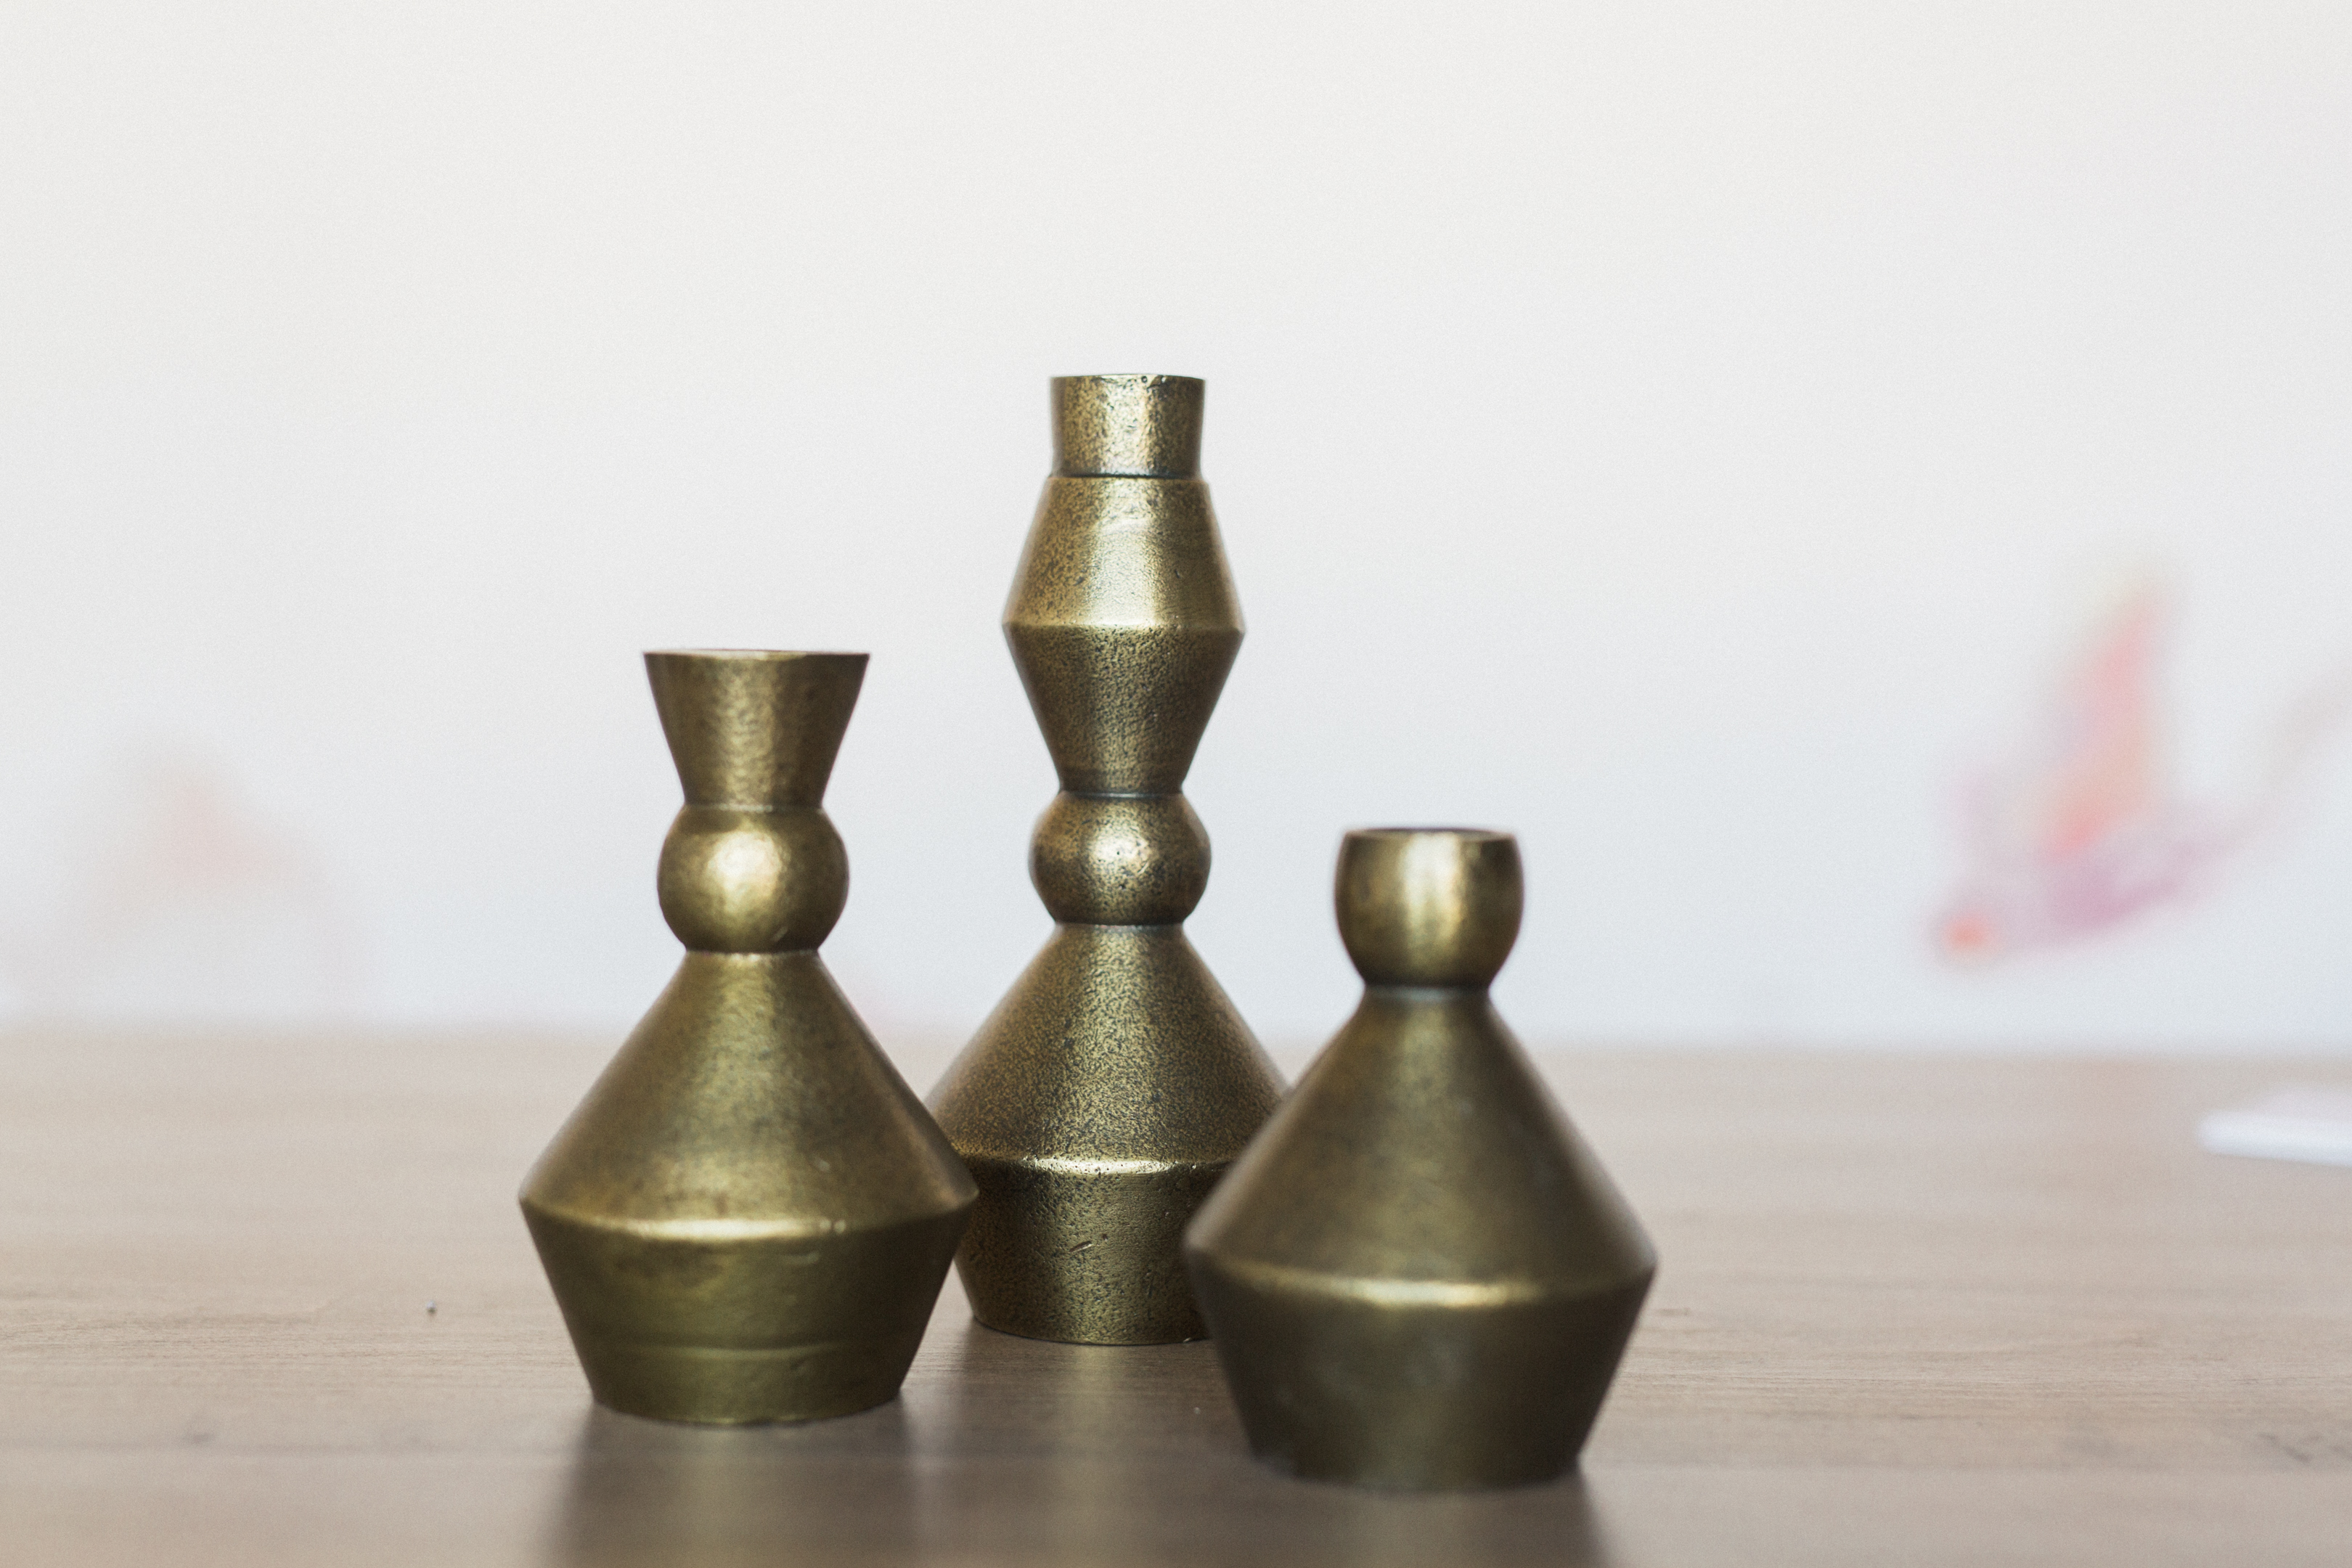 Details + Accessories, Stanhope Candlesticks - Set of 3